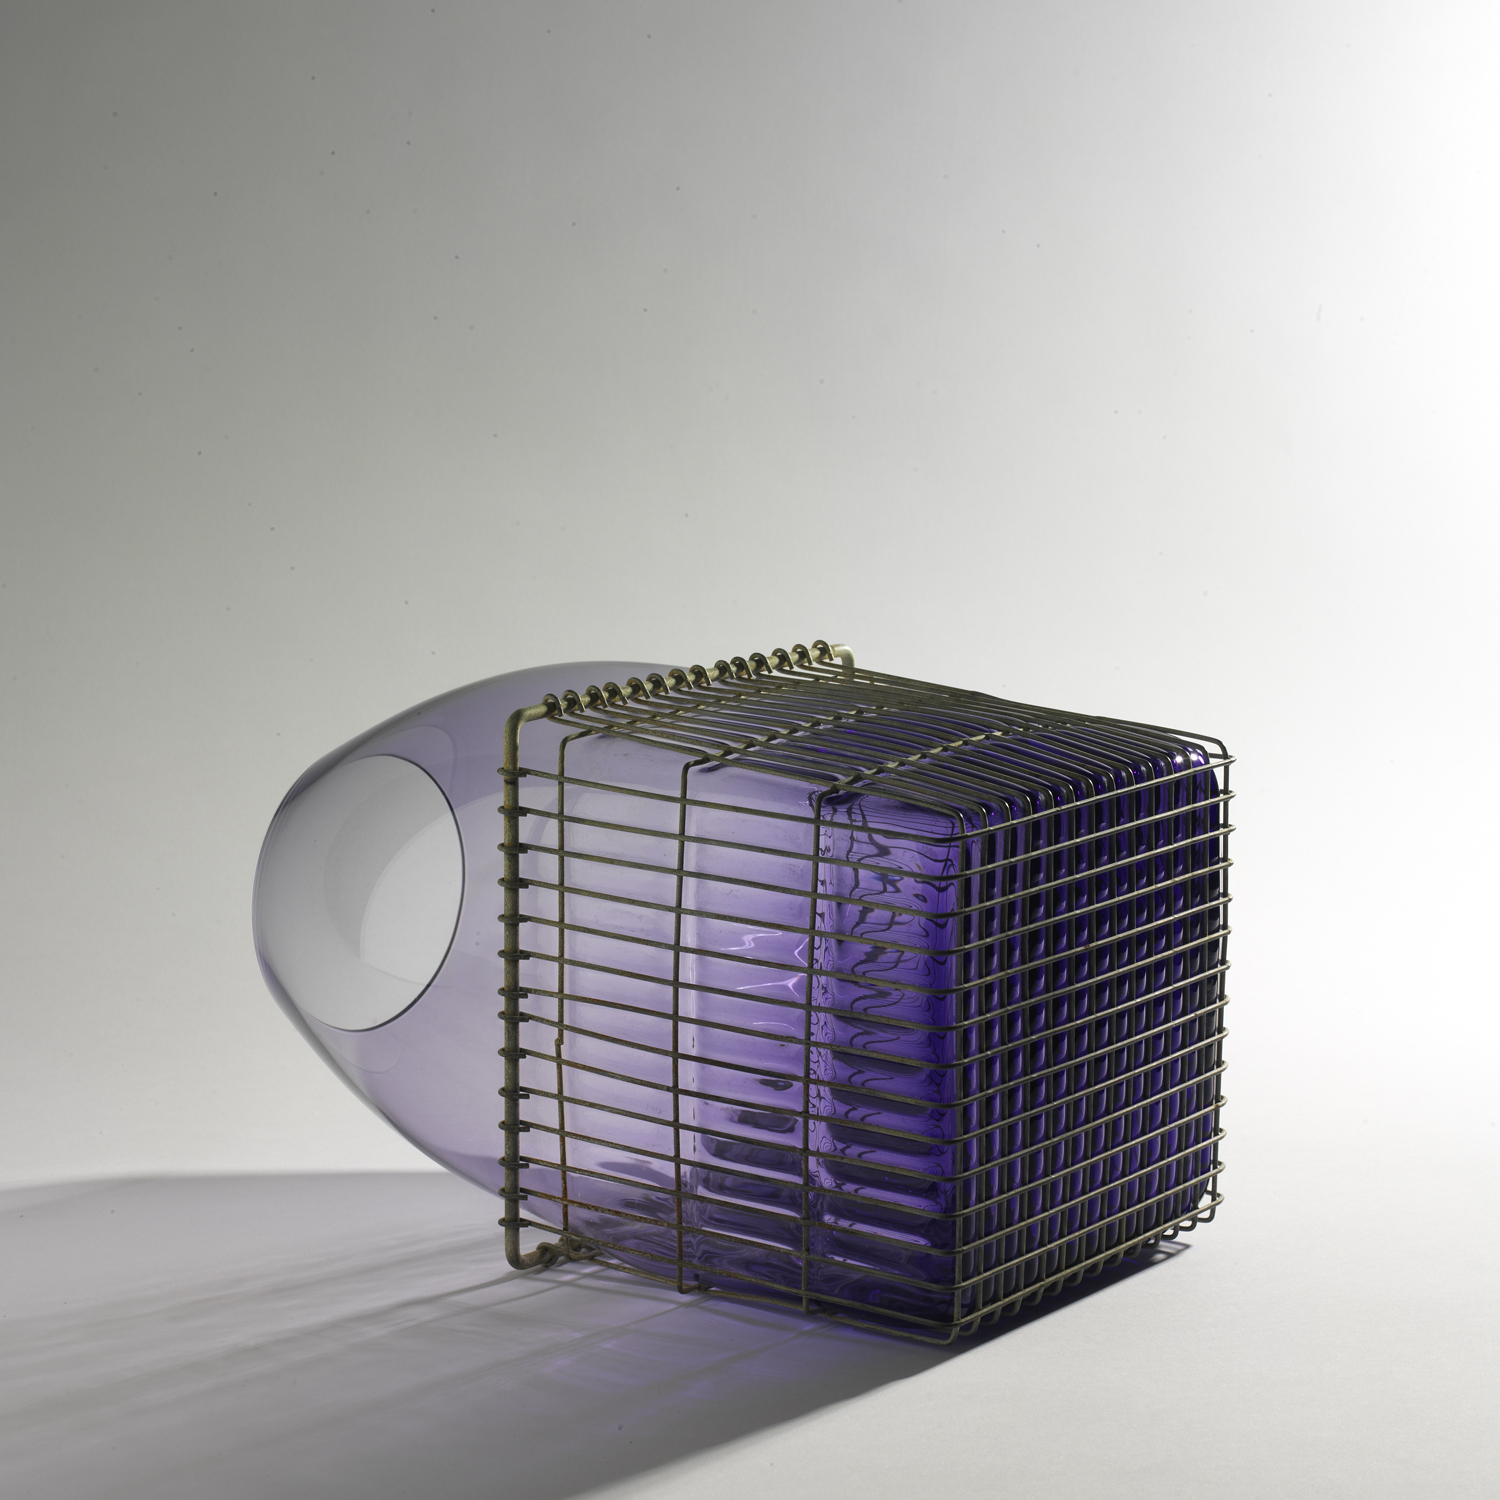 web222-violet-basket-vase-galal-fernandez-glass-by-nouvel-studio-marion-friedmann-gallery.jpg